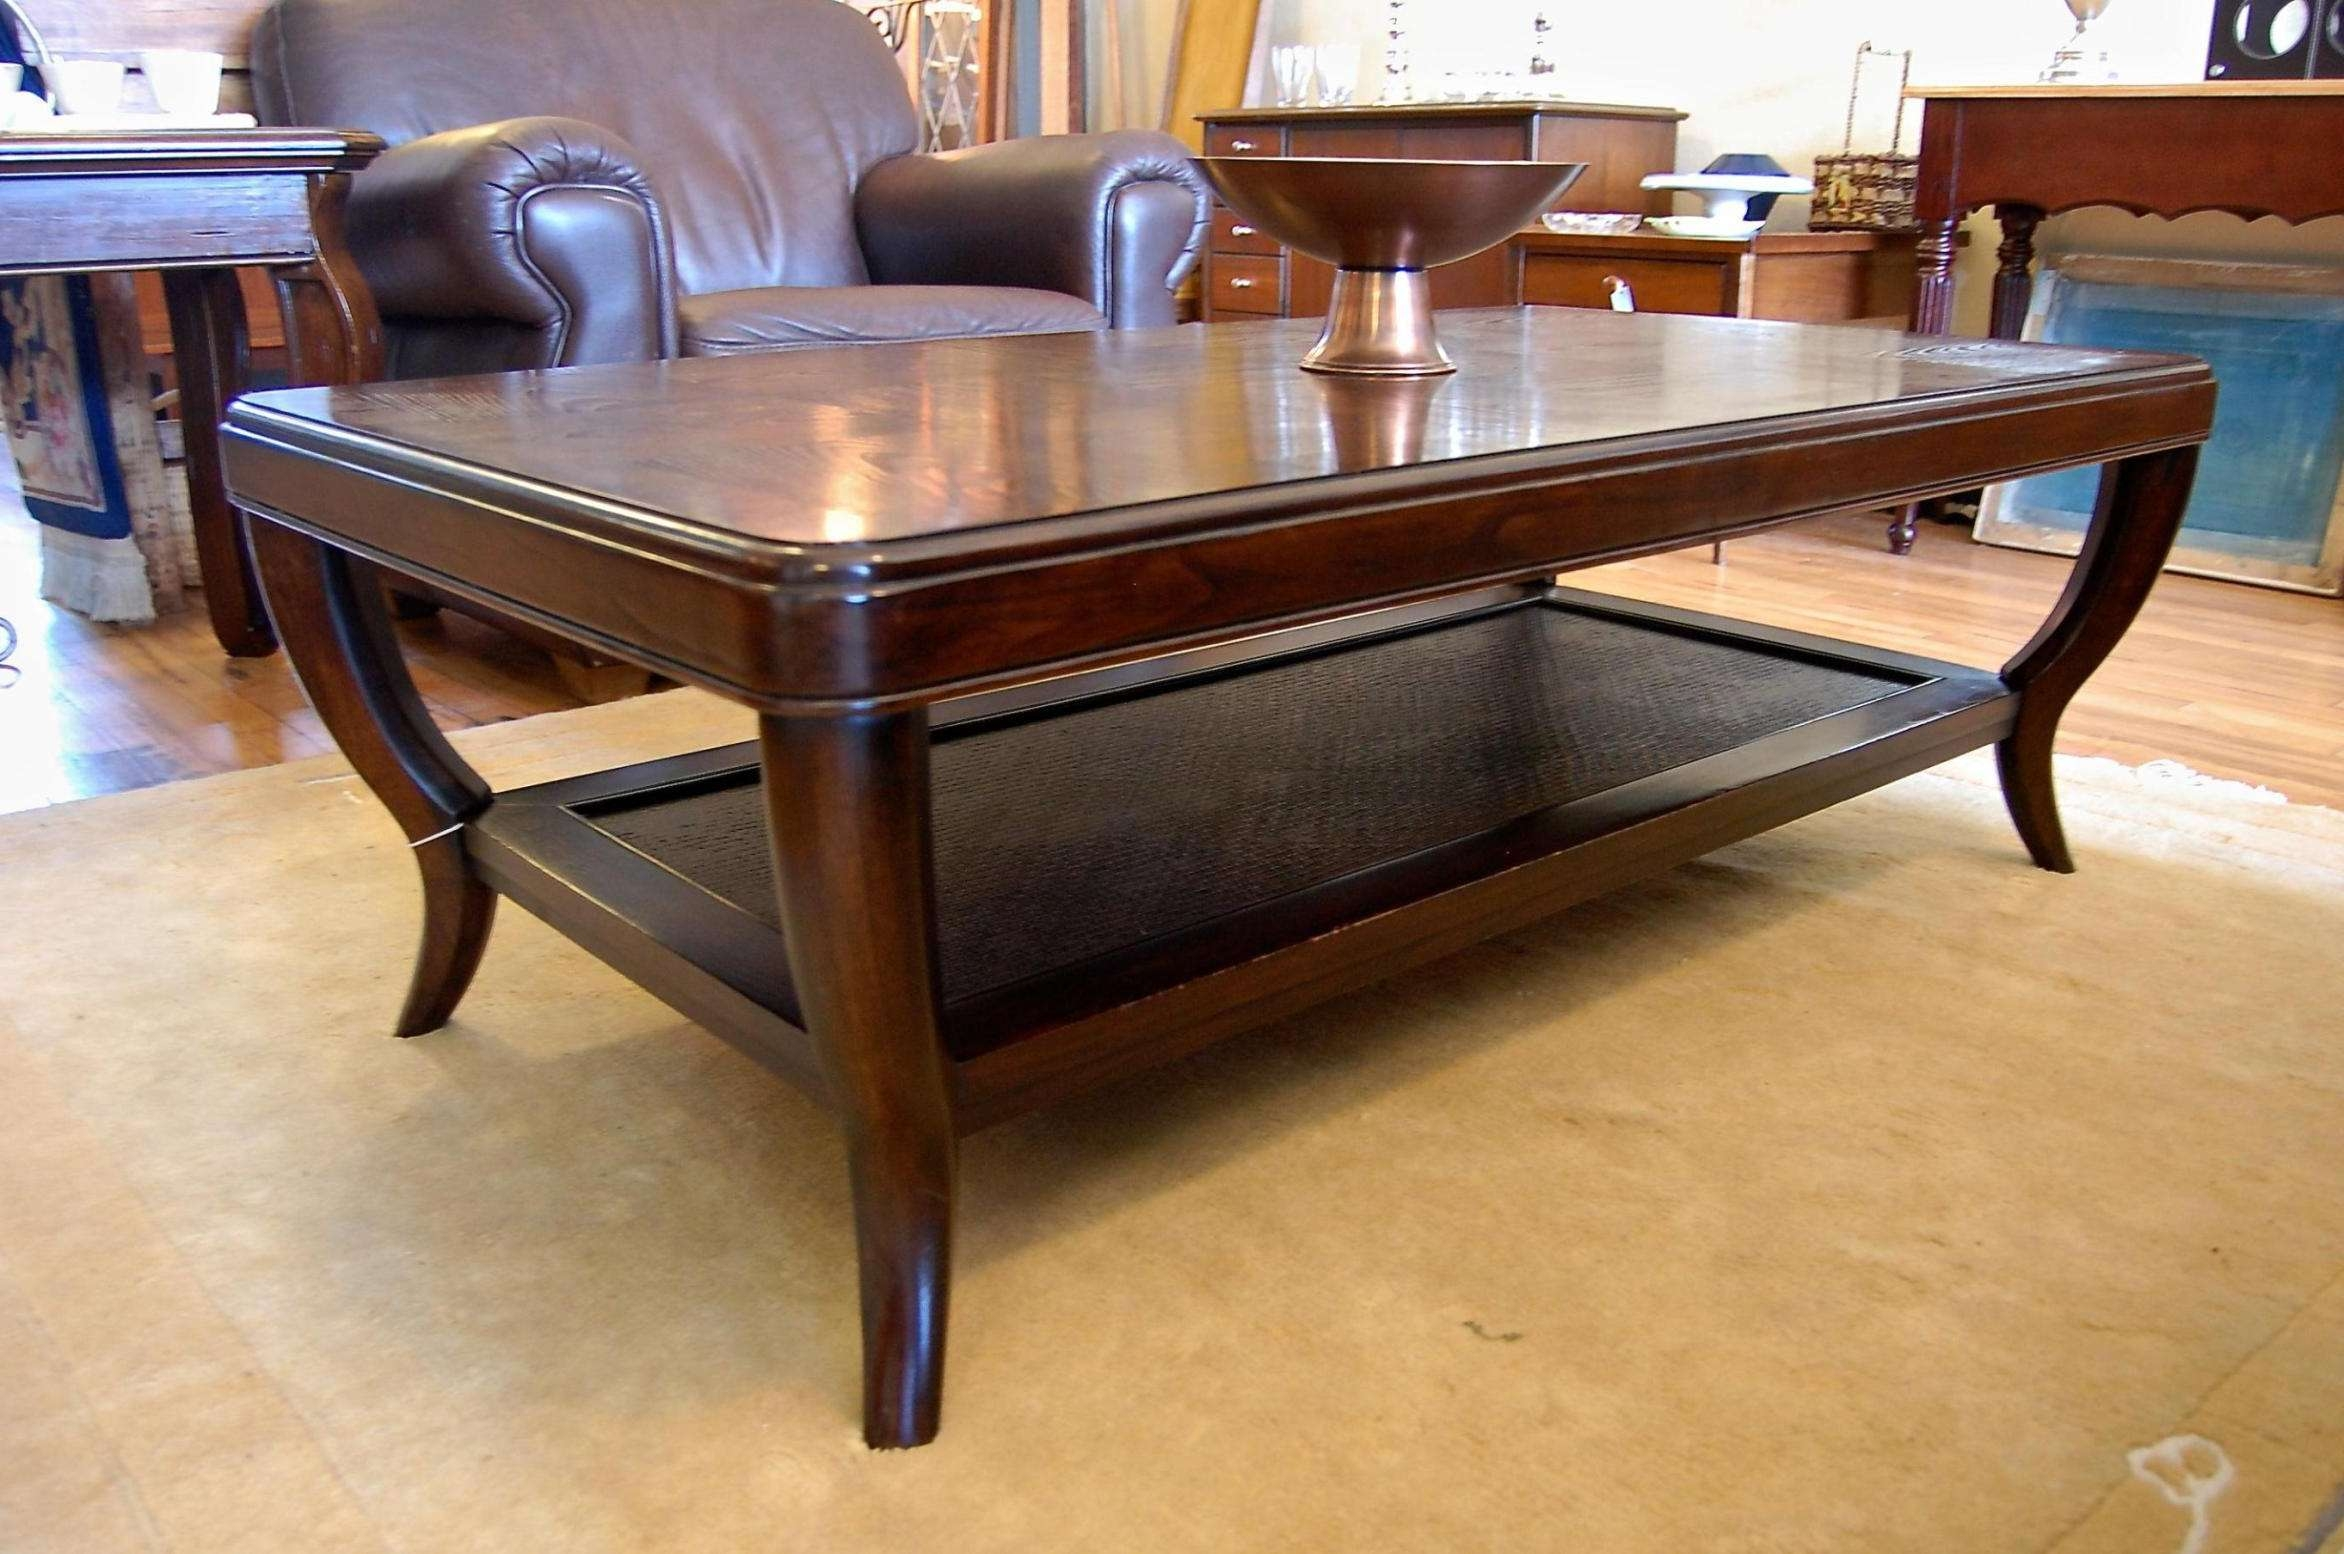 Coffee Table: Oversized Coffee Table Large Wood Coffee Tables Throughout Most Current Large Wood Coffee Tables (View 6 of 20)